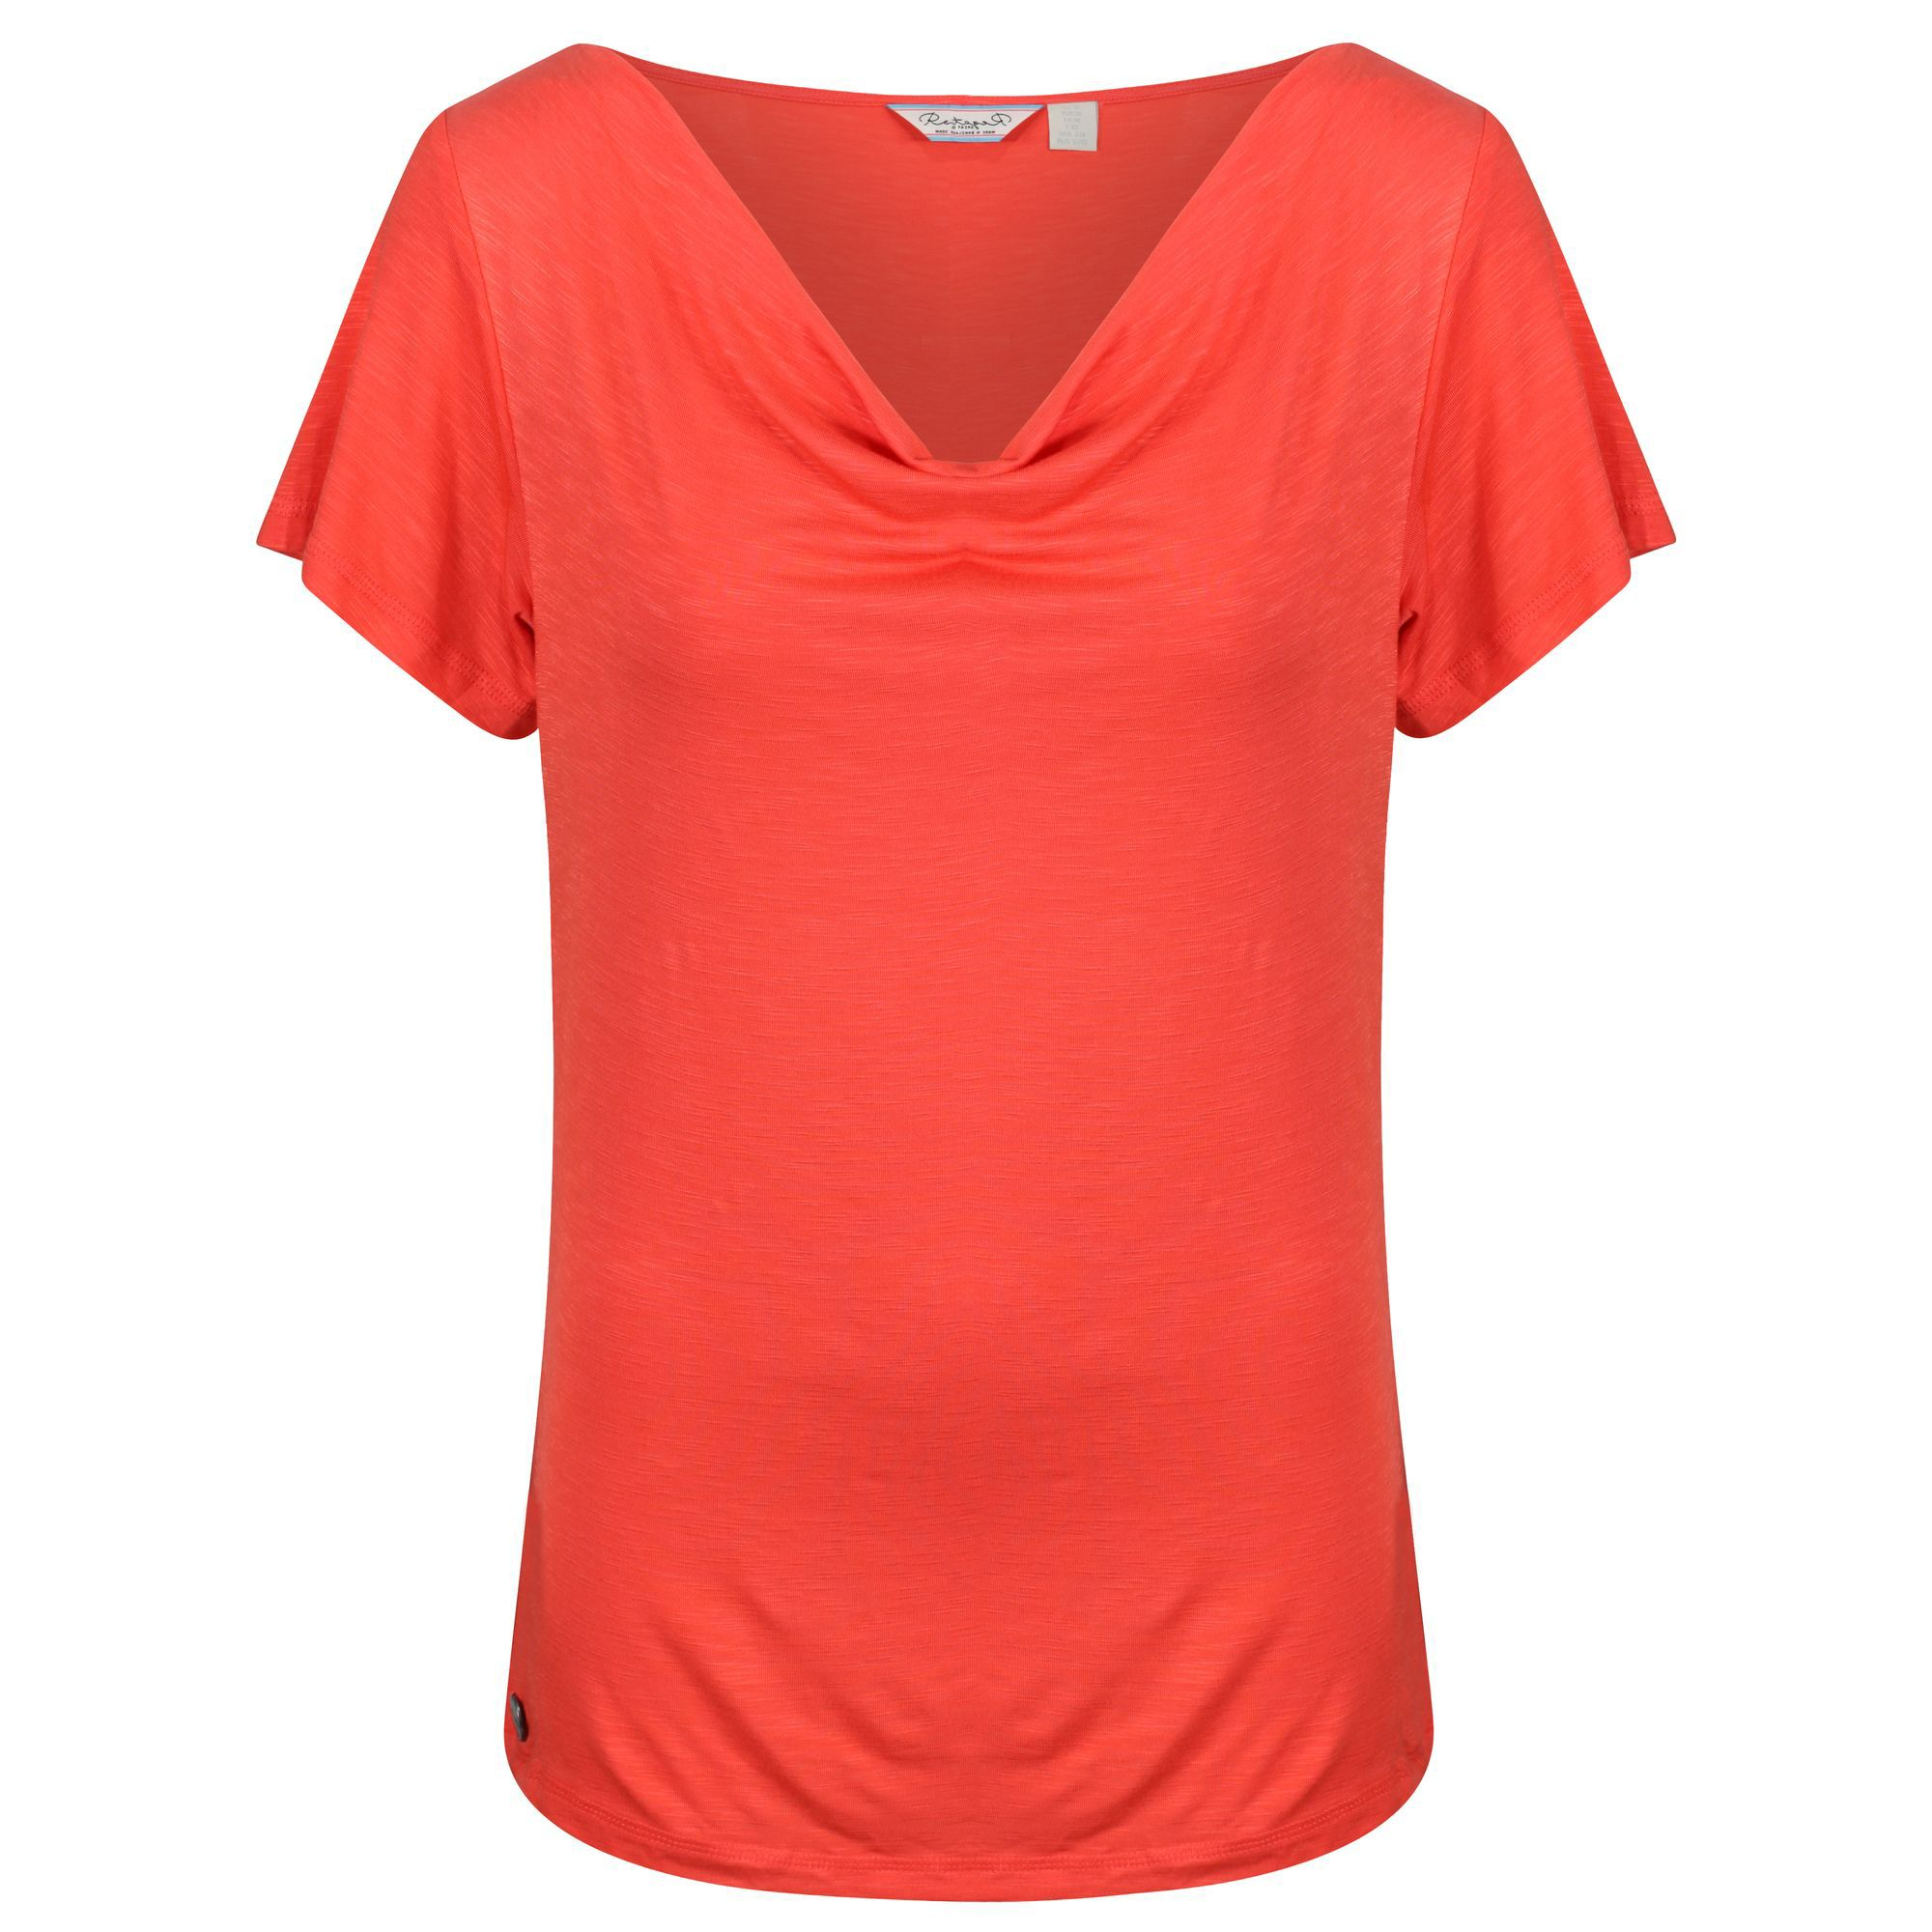 Regatta Francheska Jersey Top, Peach